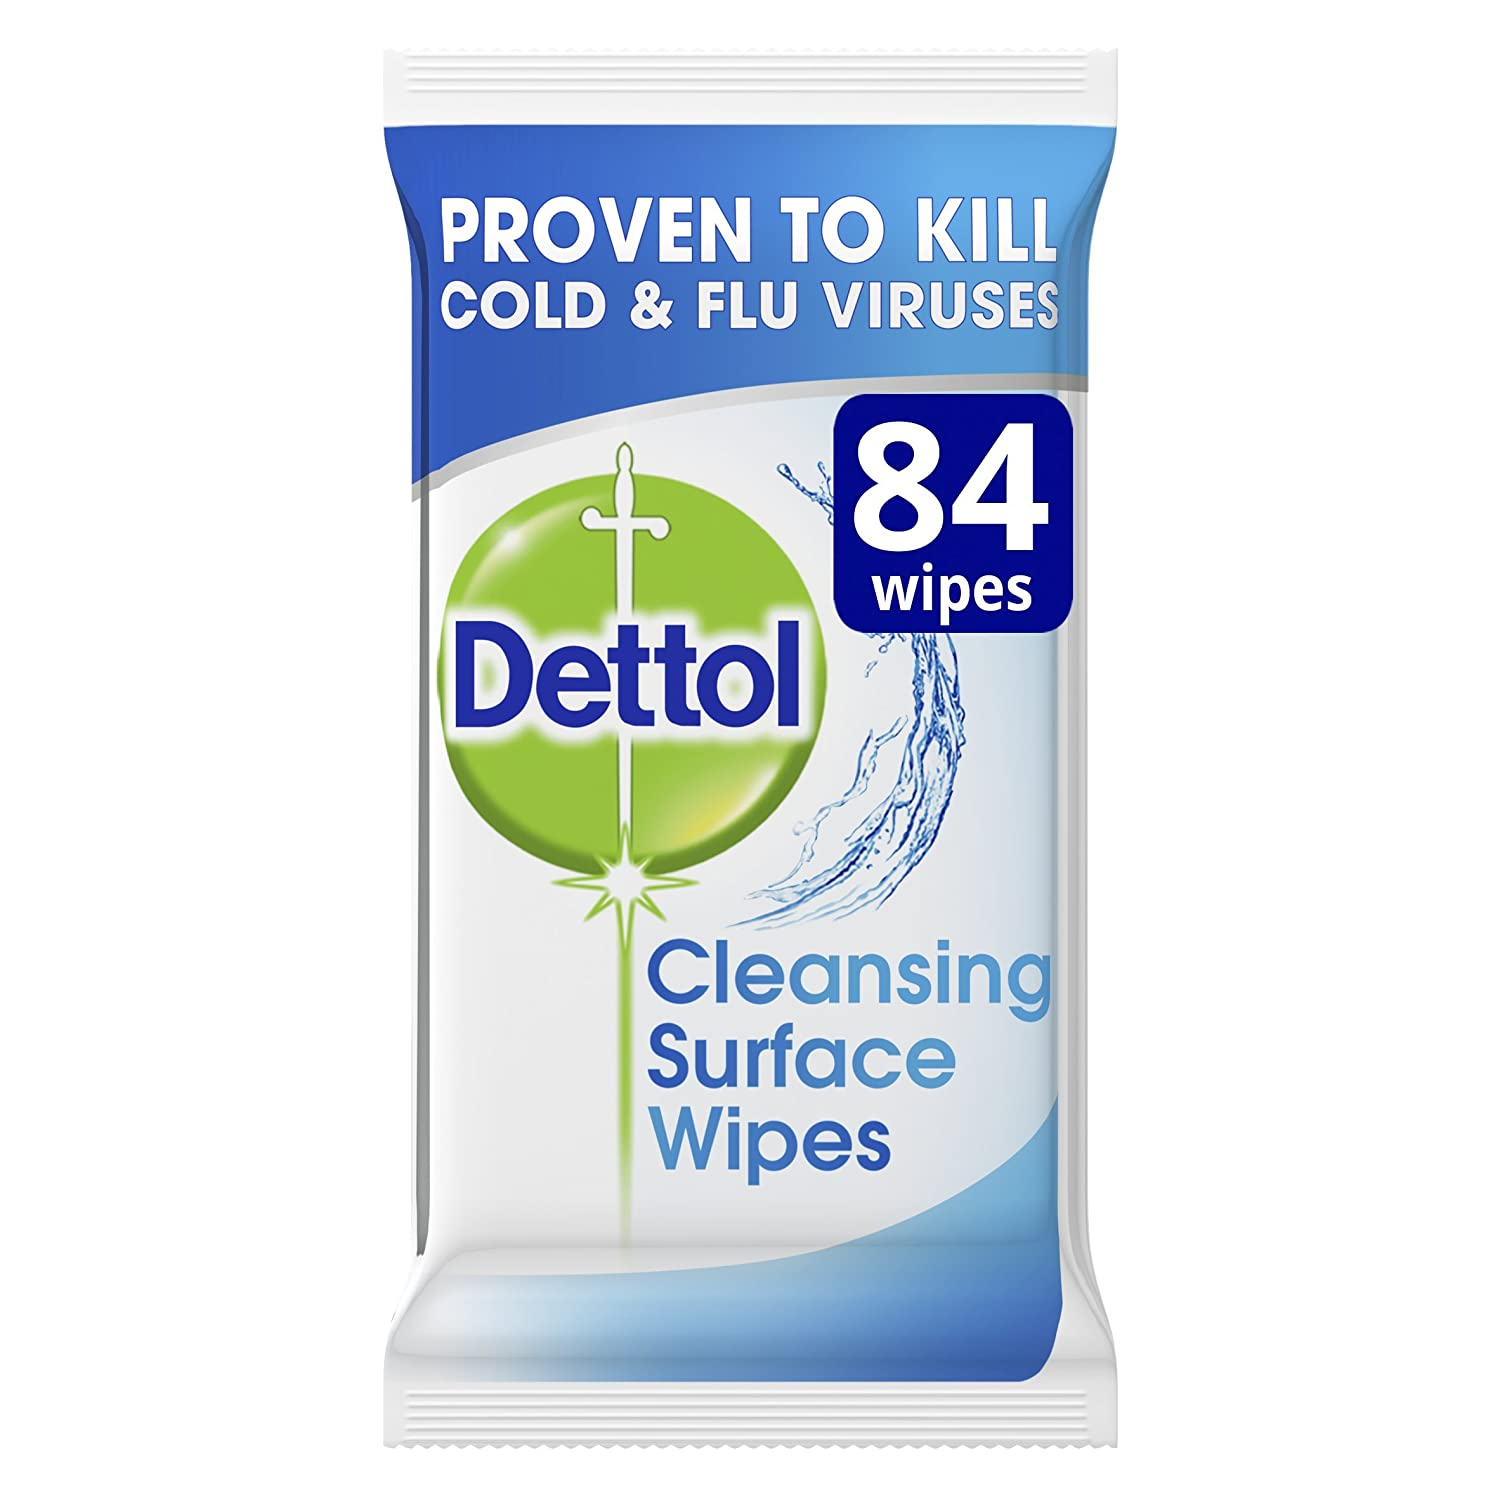 Dettol Antibacterial Surface Cleaning Wipes 84 Antiseptic Liquid 500 Ml 2 Pcs Flash Prime Pantry